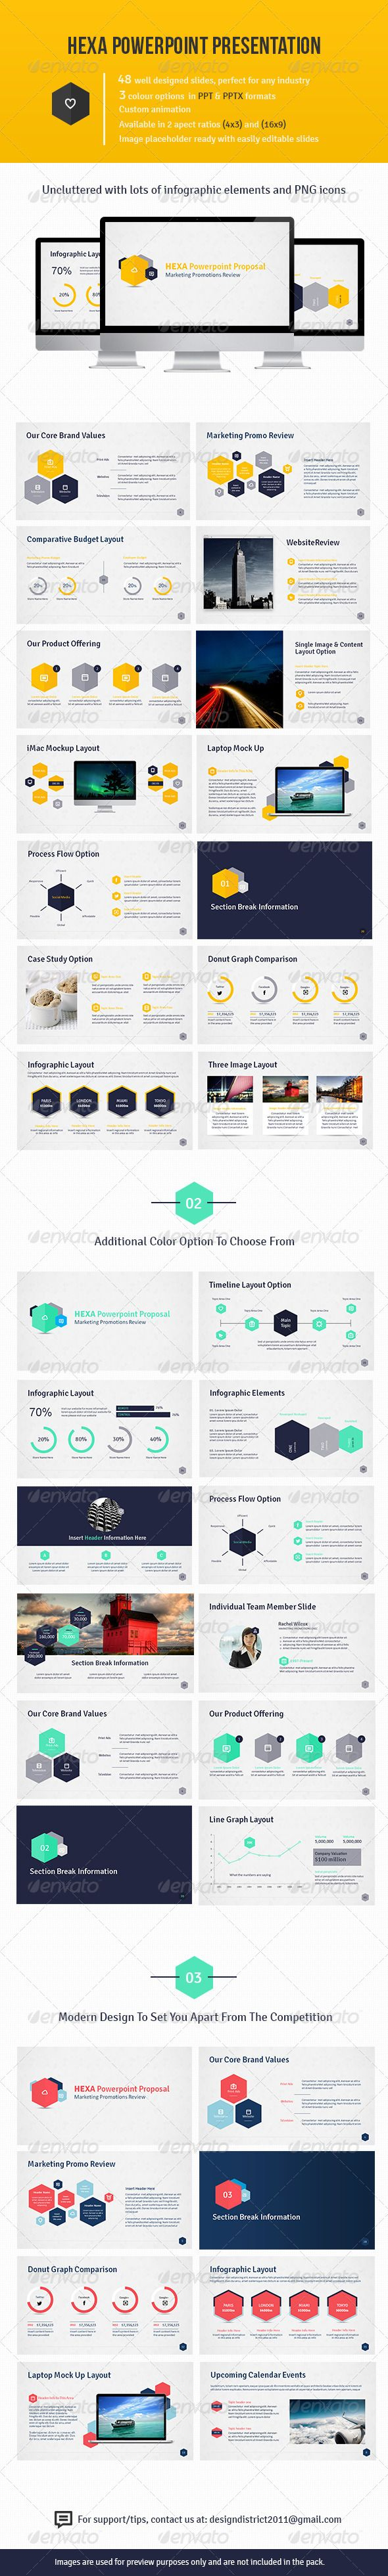 Hexa Powerpoint Presentation - Business Powerpoint Templates